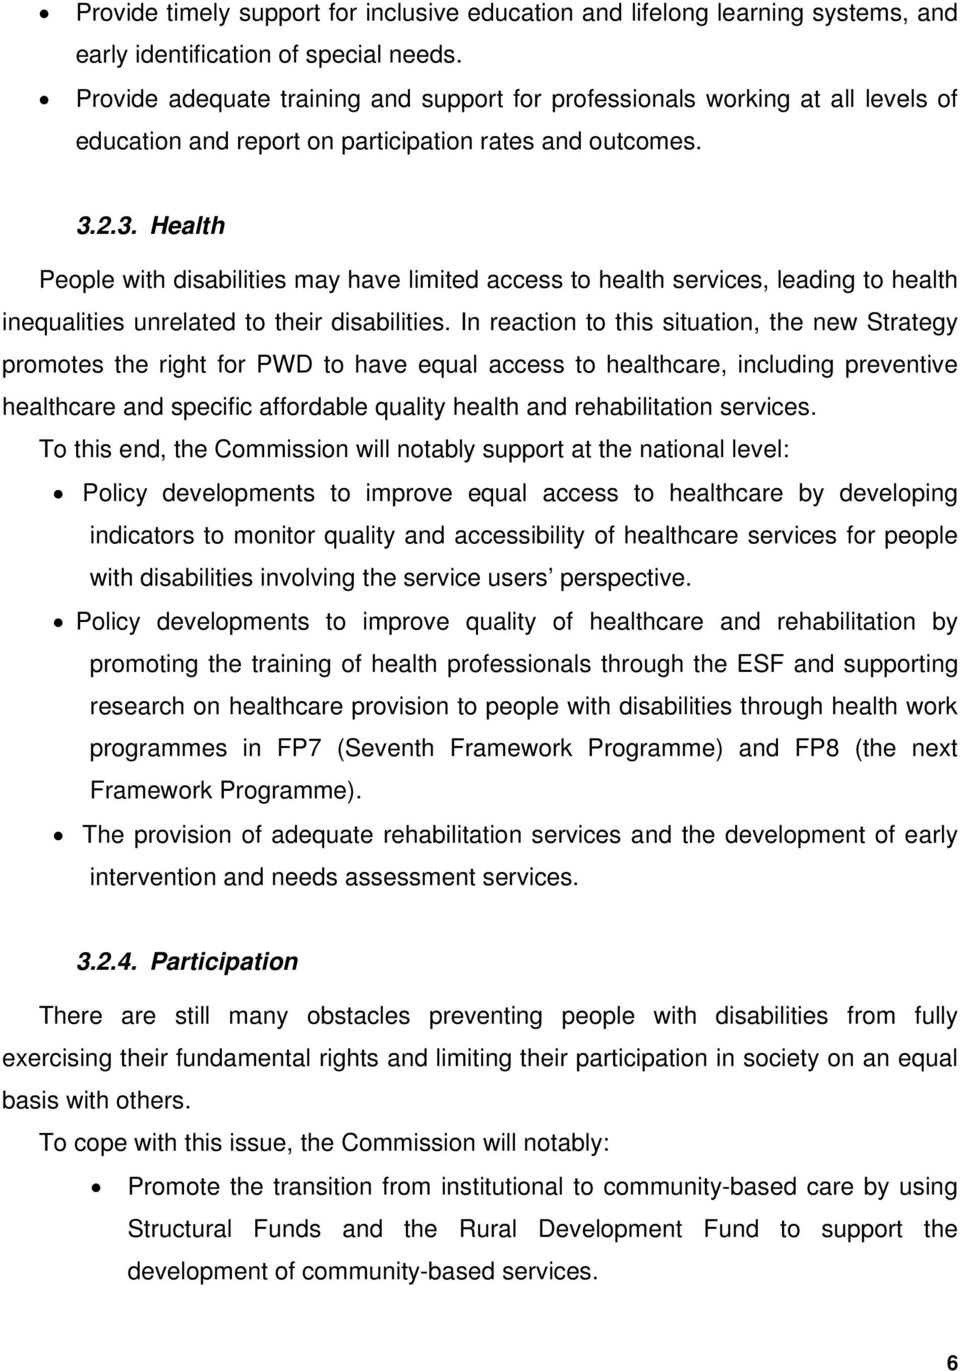 2.3. Health People with disabilities may have limited access to health services, leading to health inequalities unrelated to their disabilities.